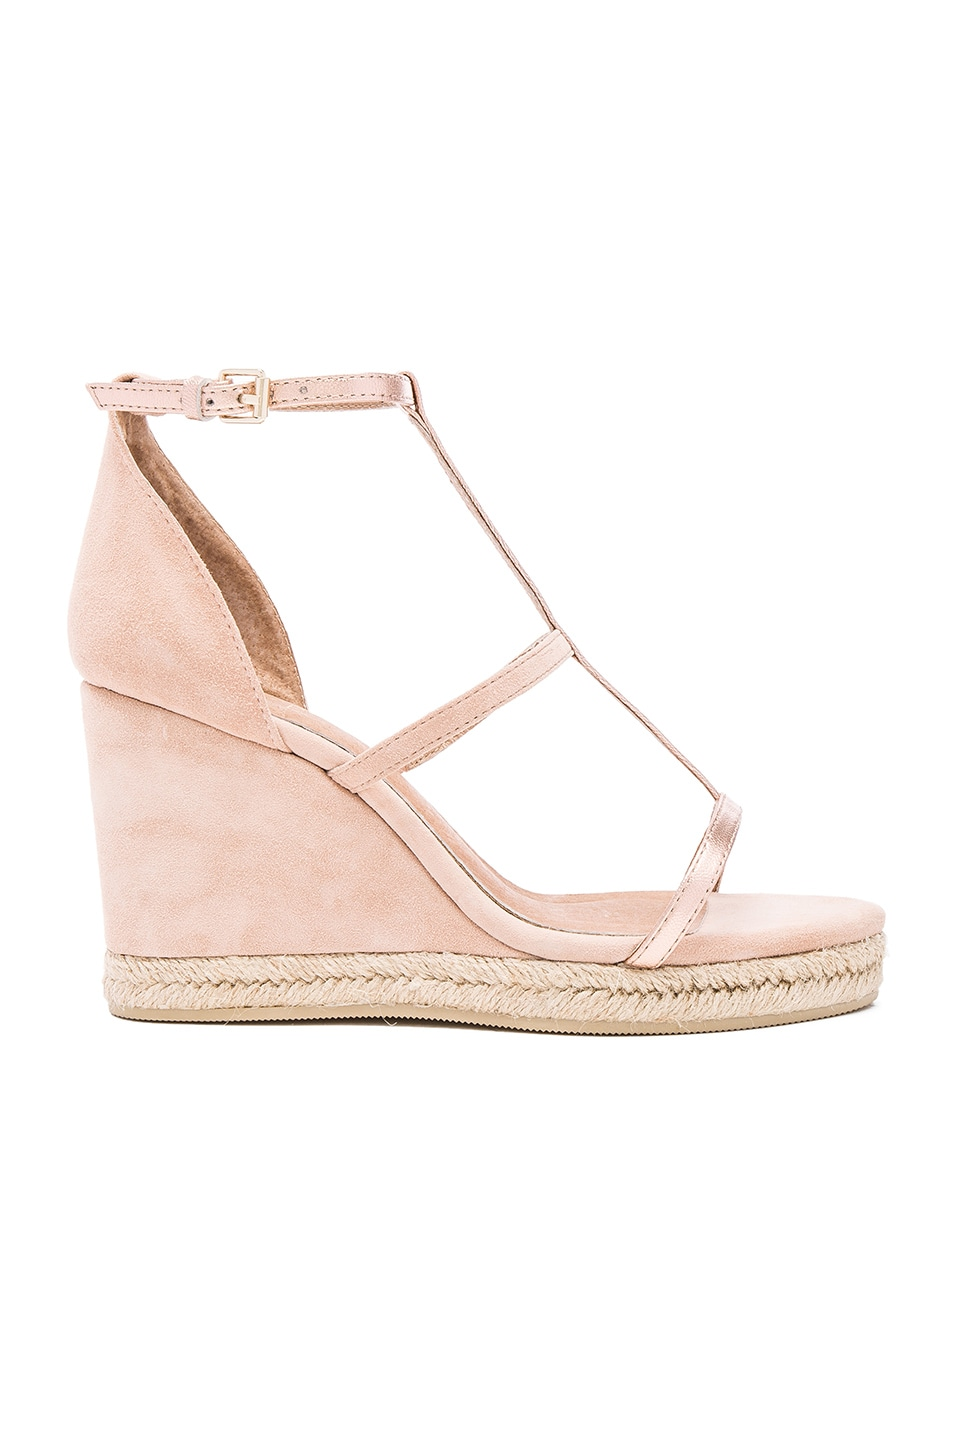 RAYE Dillon Wedge in Rose Gold & Blush